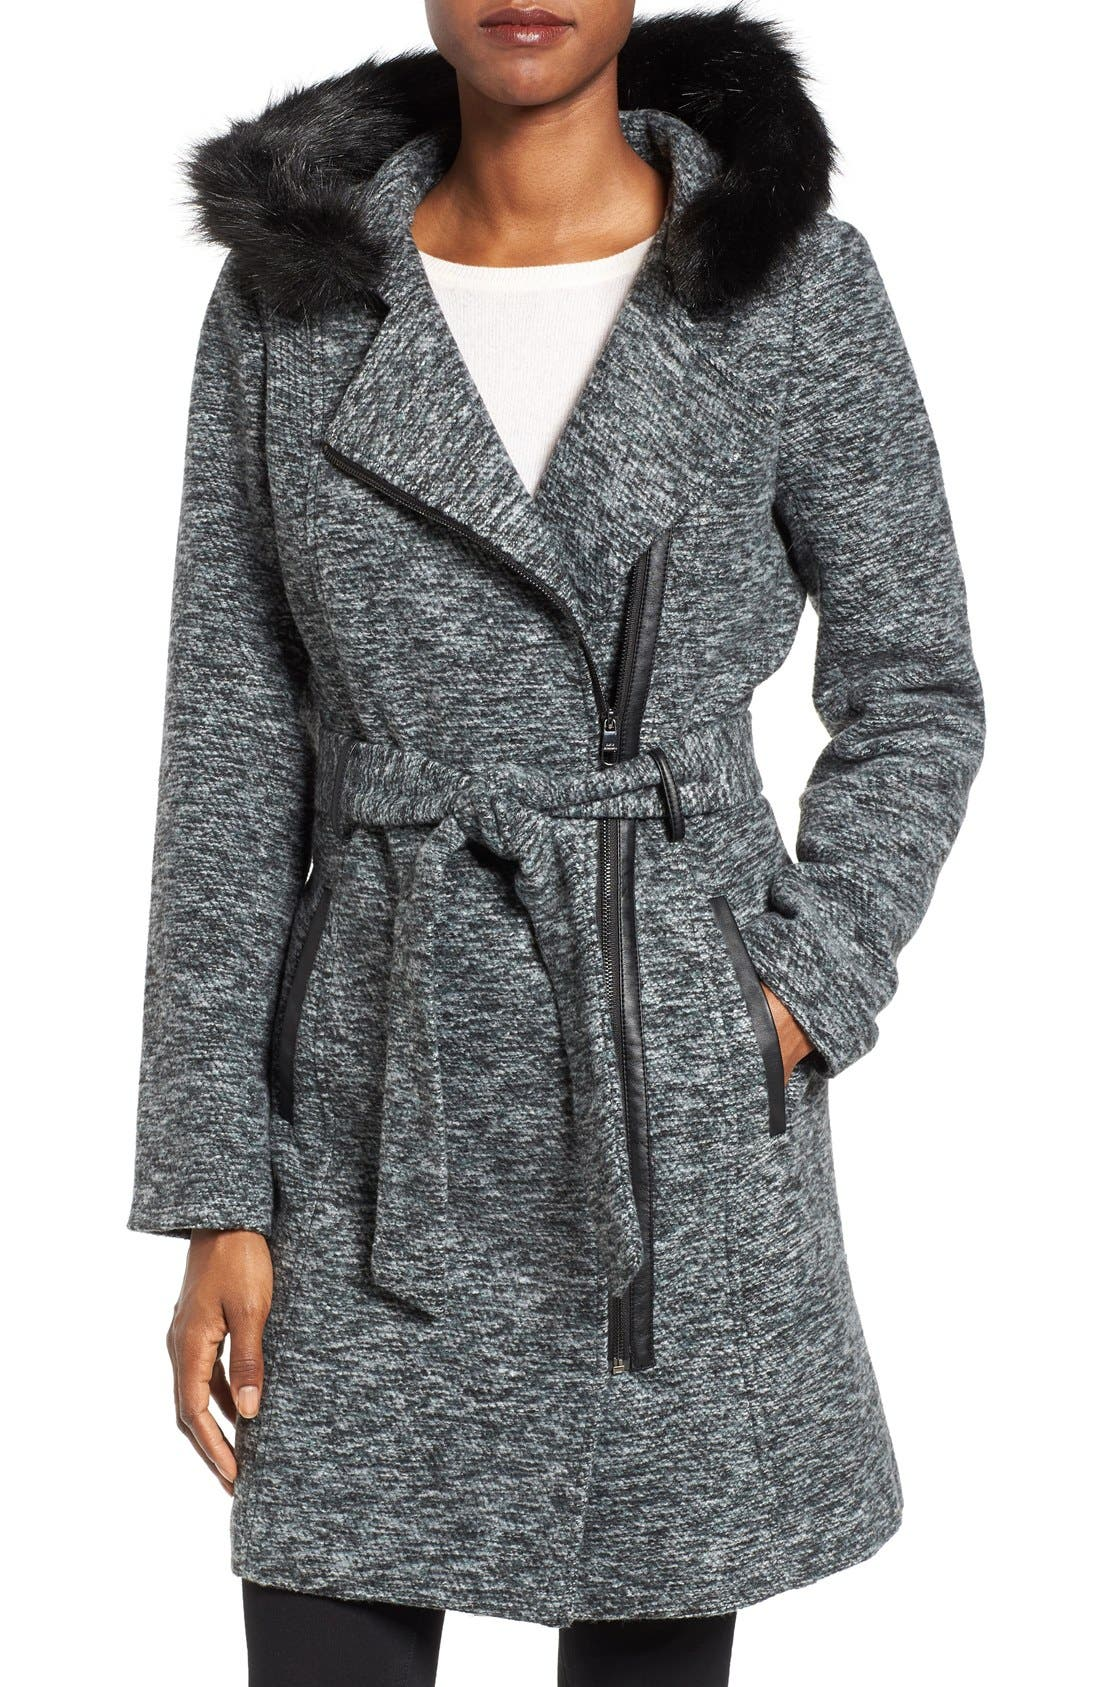 Alternate Image 1 Selected - Steve Madden Asymmetrical Hooded Coat with Faux Fur Trim